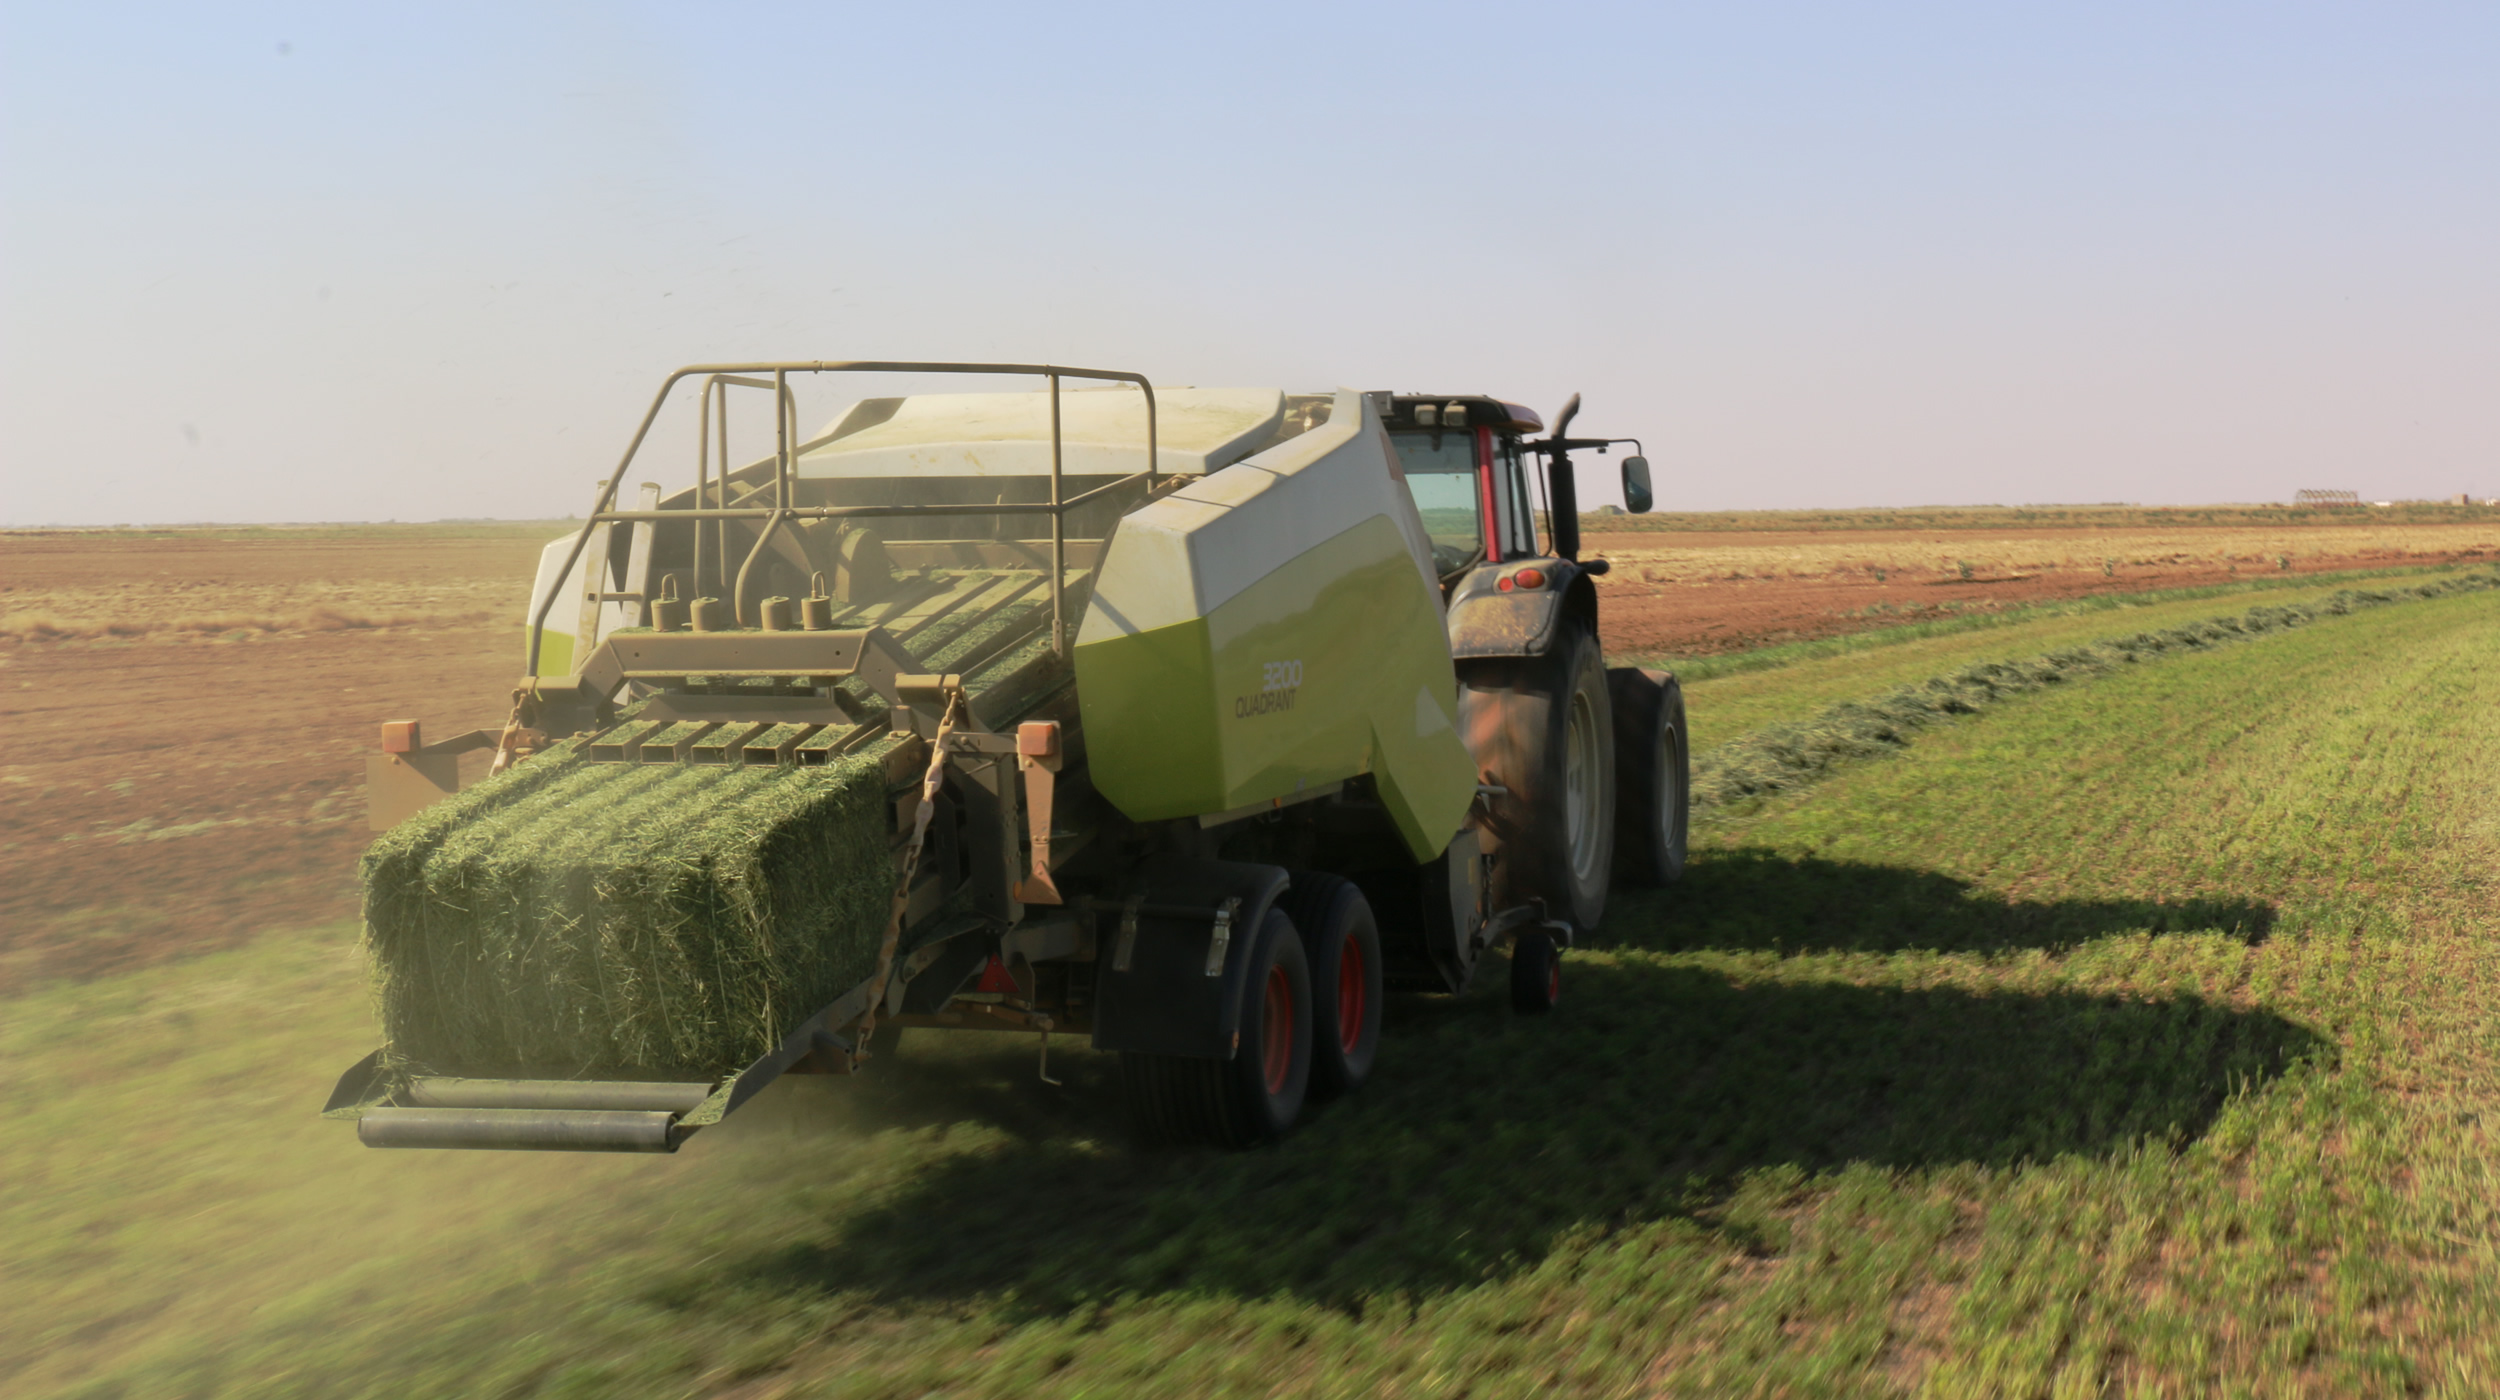 Hay & Forage Equipment Mowers, Balers, Windrowers | Agriculture Africa